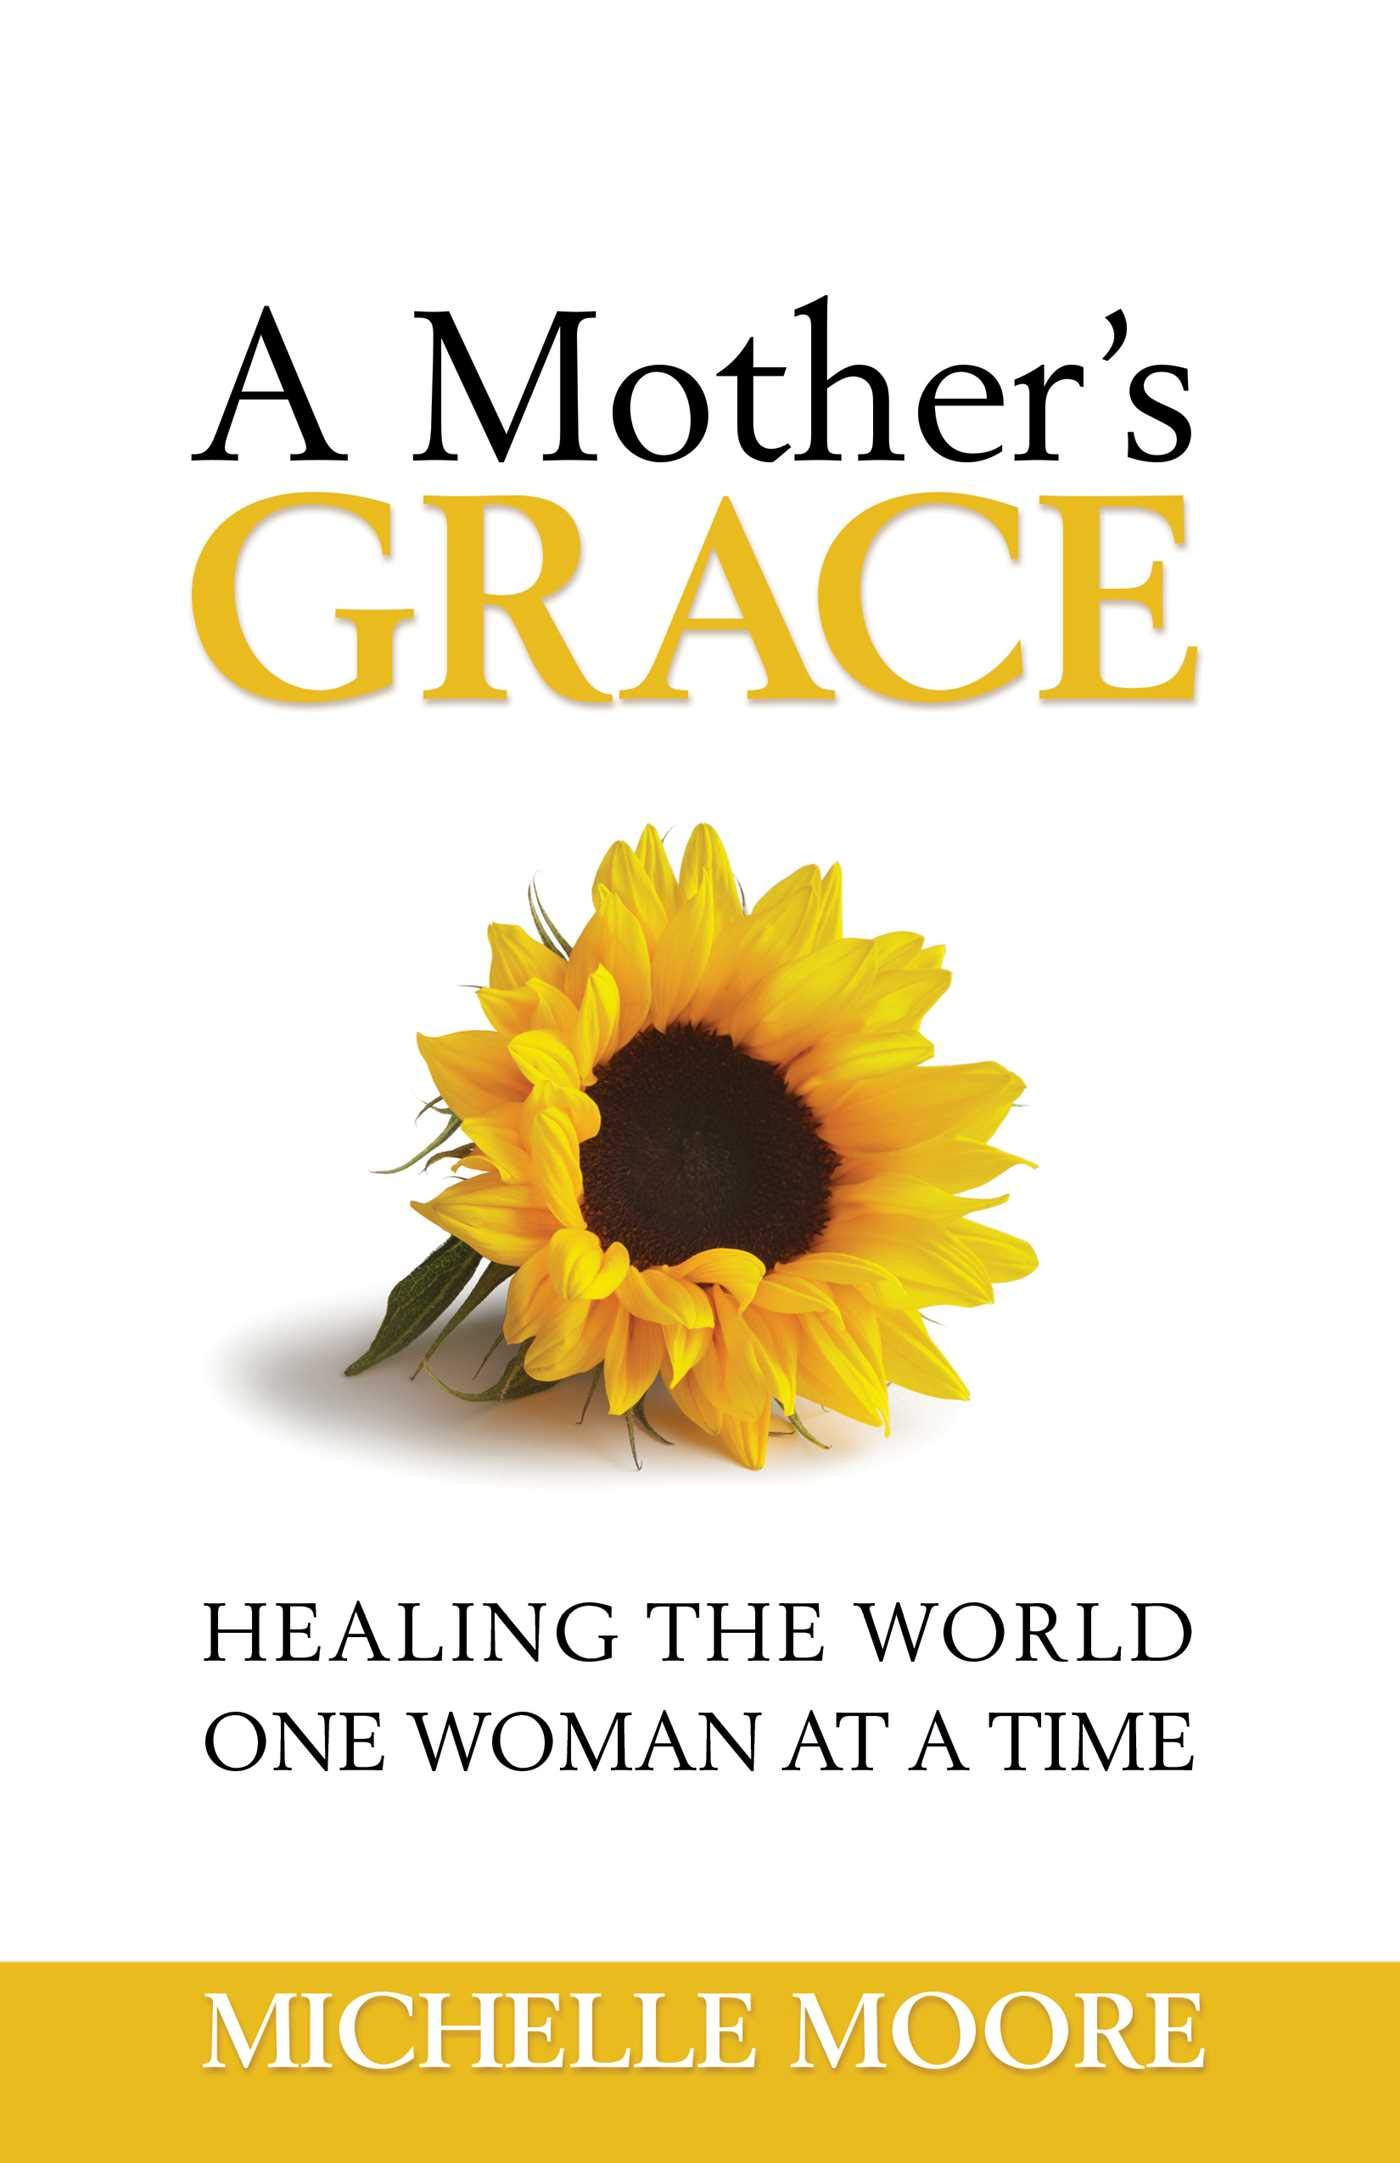 A Mother's Grace, Healing the World One Woman at a Time – Book Promotion